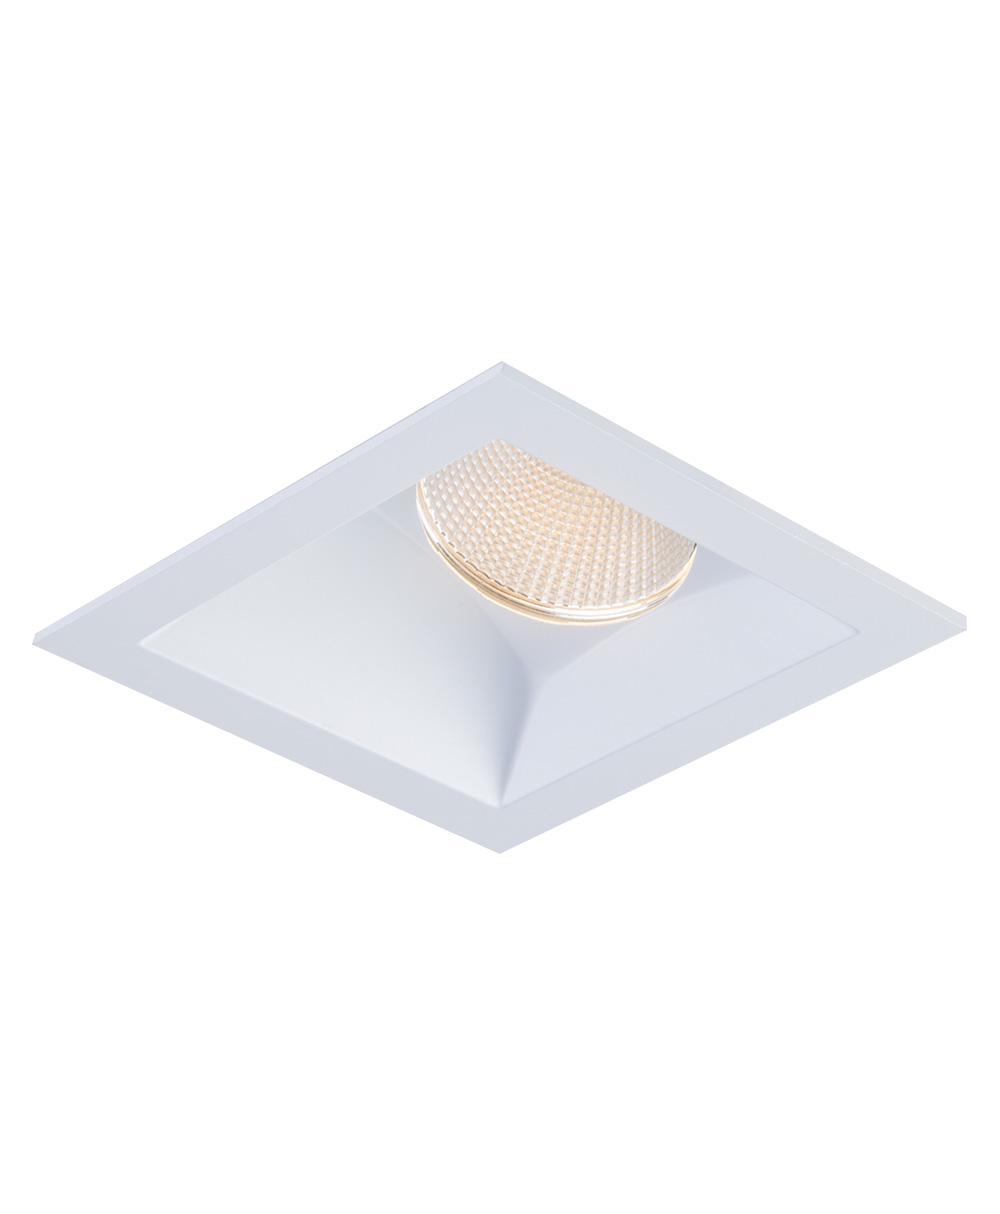 SIGMA 2 Square Slope Ceiling, Wall Wash LED Fixture